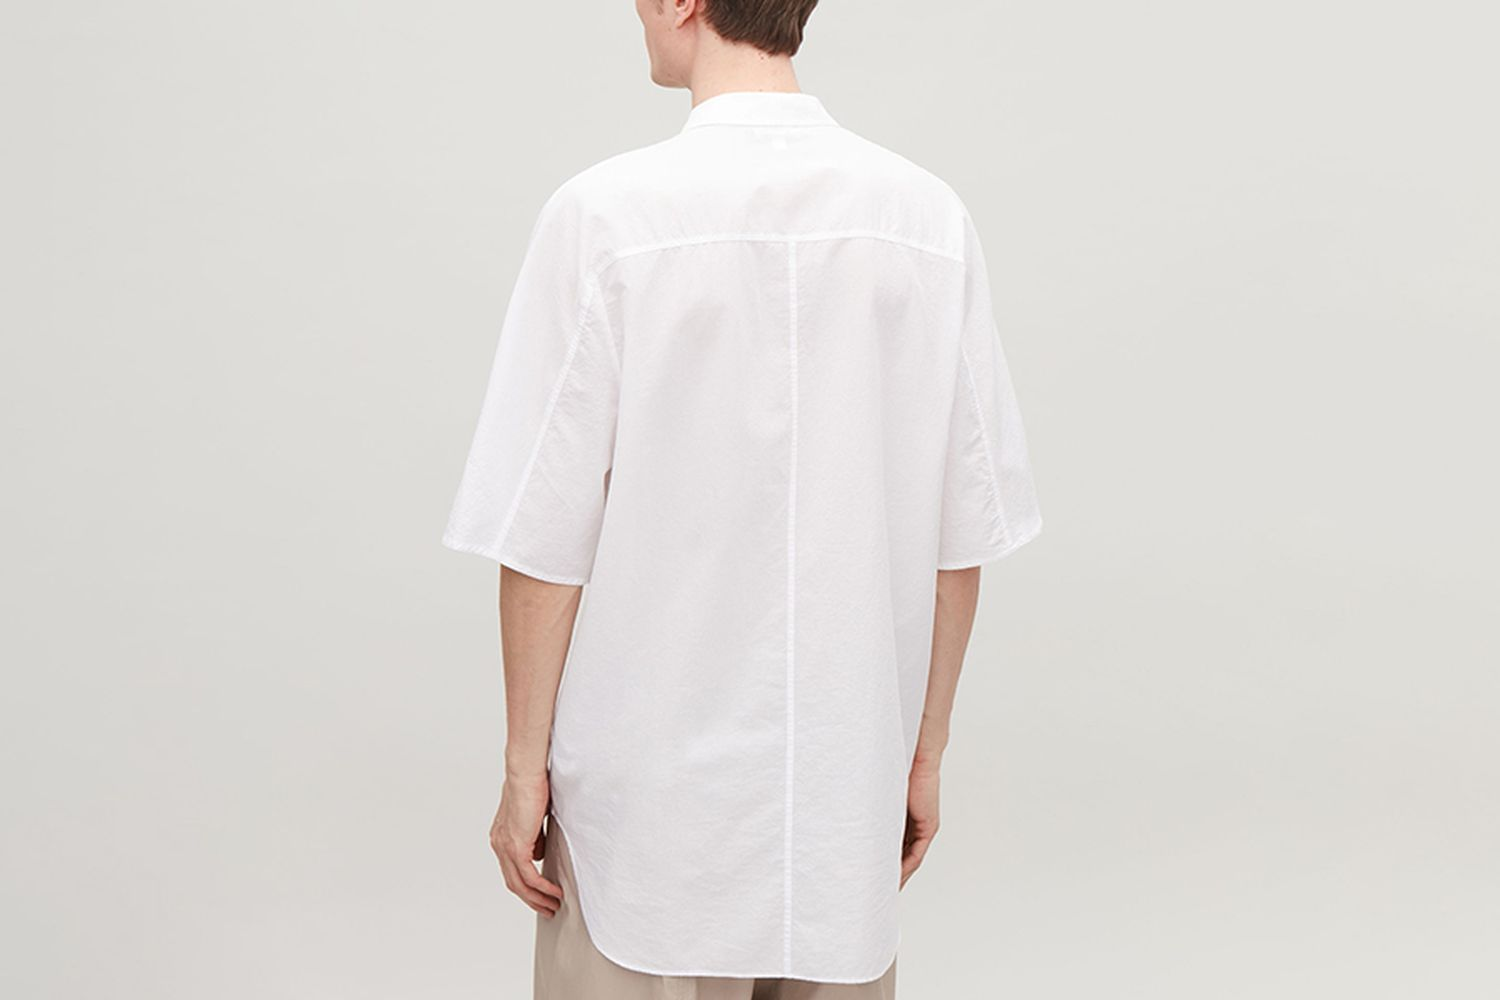 Oversized Light Cotton Shirt